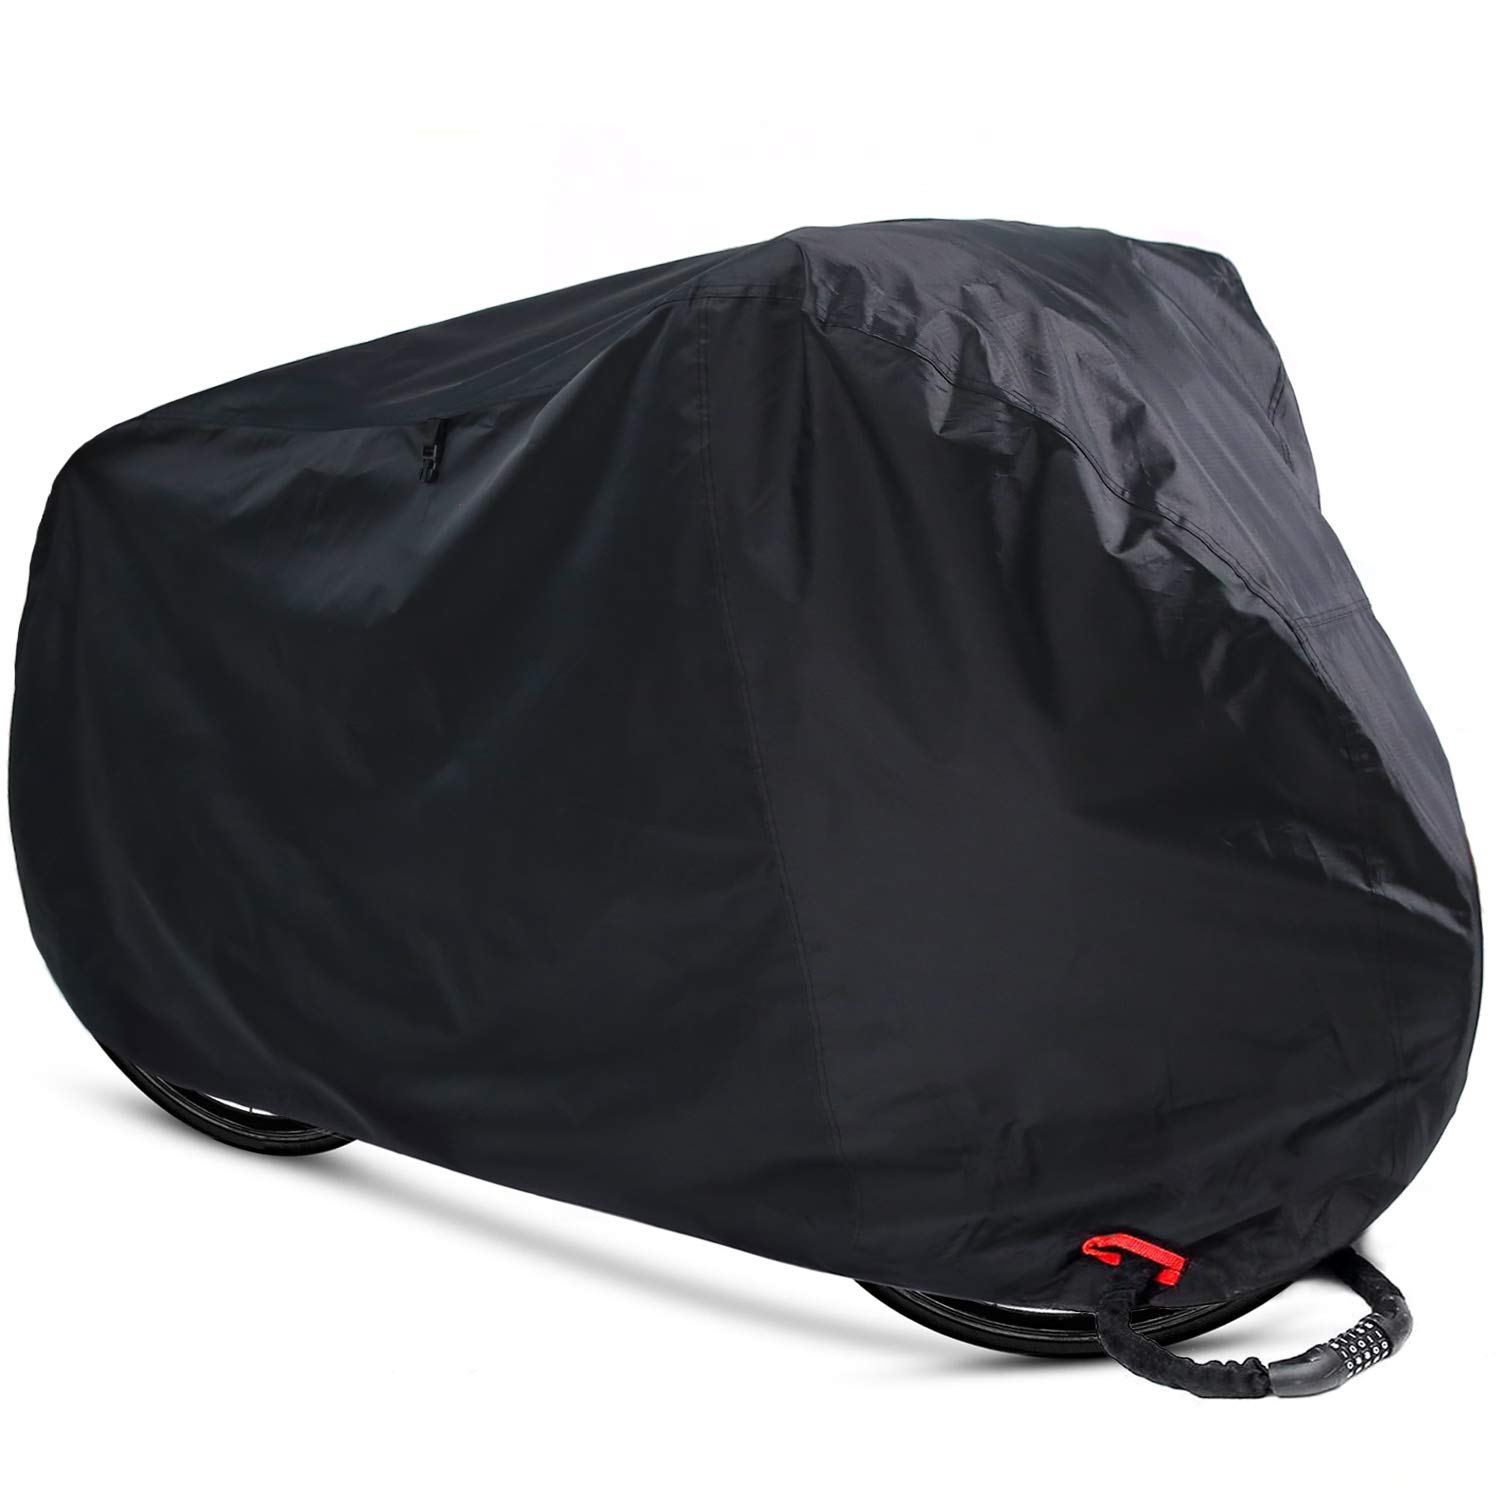 Ohuhu Bike Cover Waterproof Outdoor Bicycle Storage Covers All Weather Resistance, Ripstop Oxford Fabric for Mountain and Road Bikes